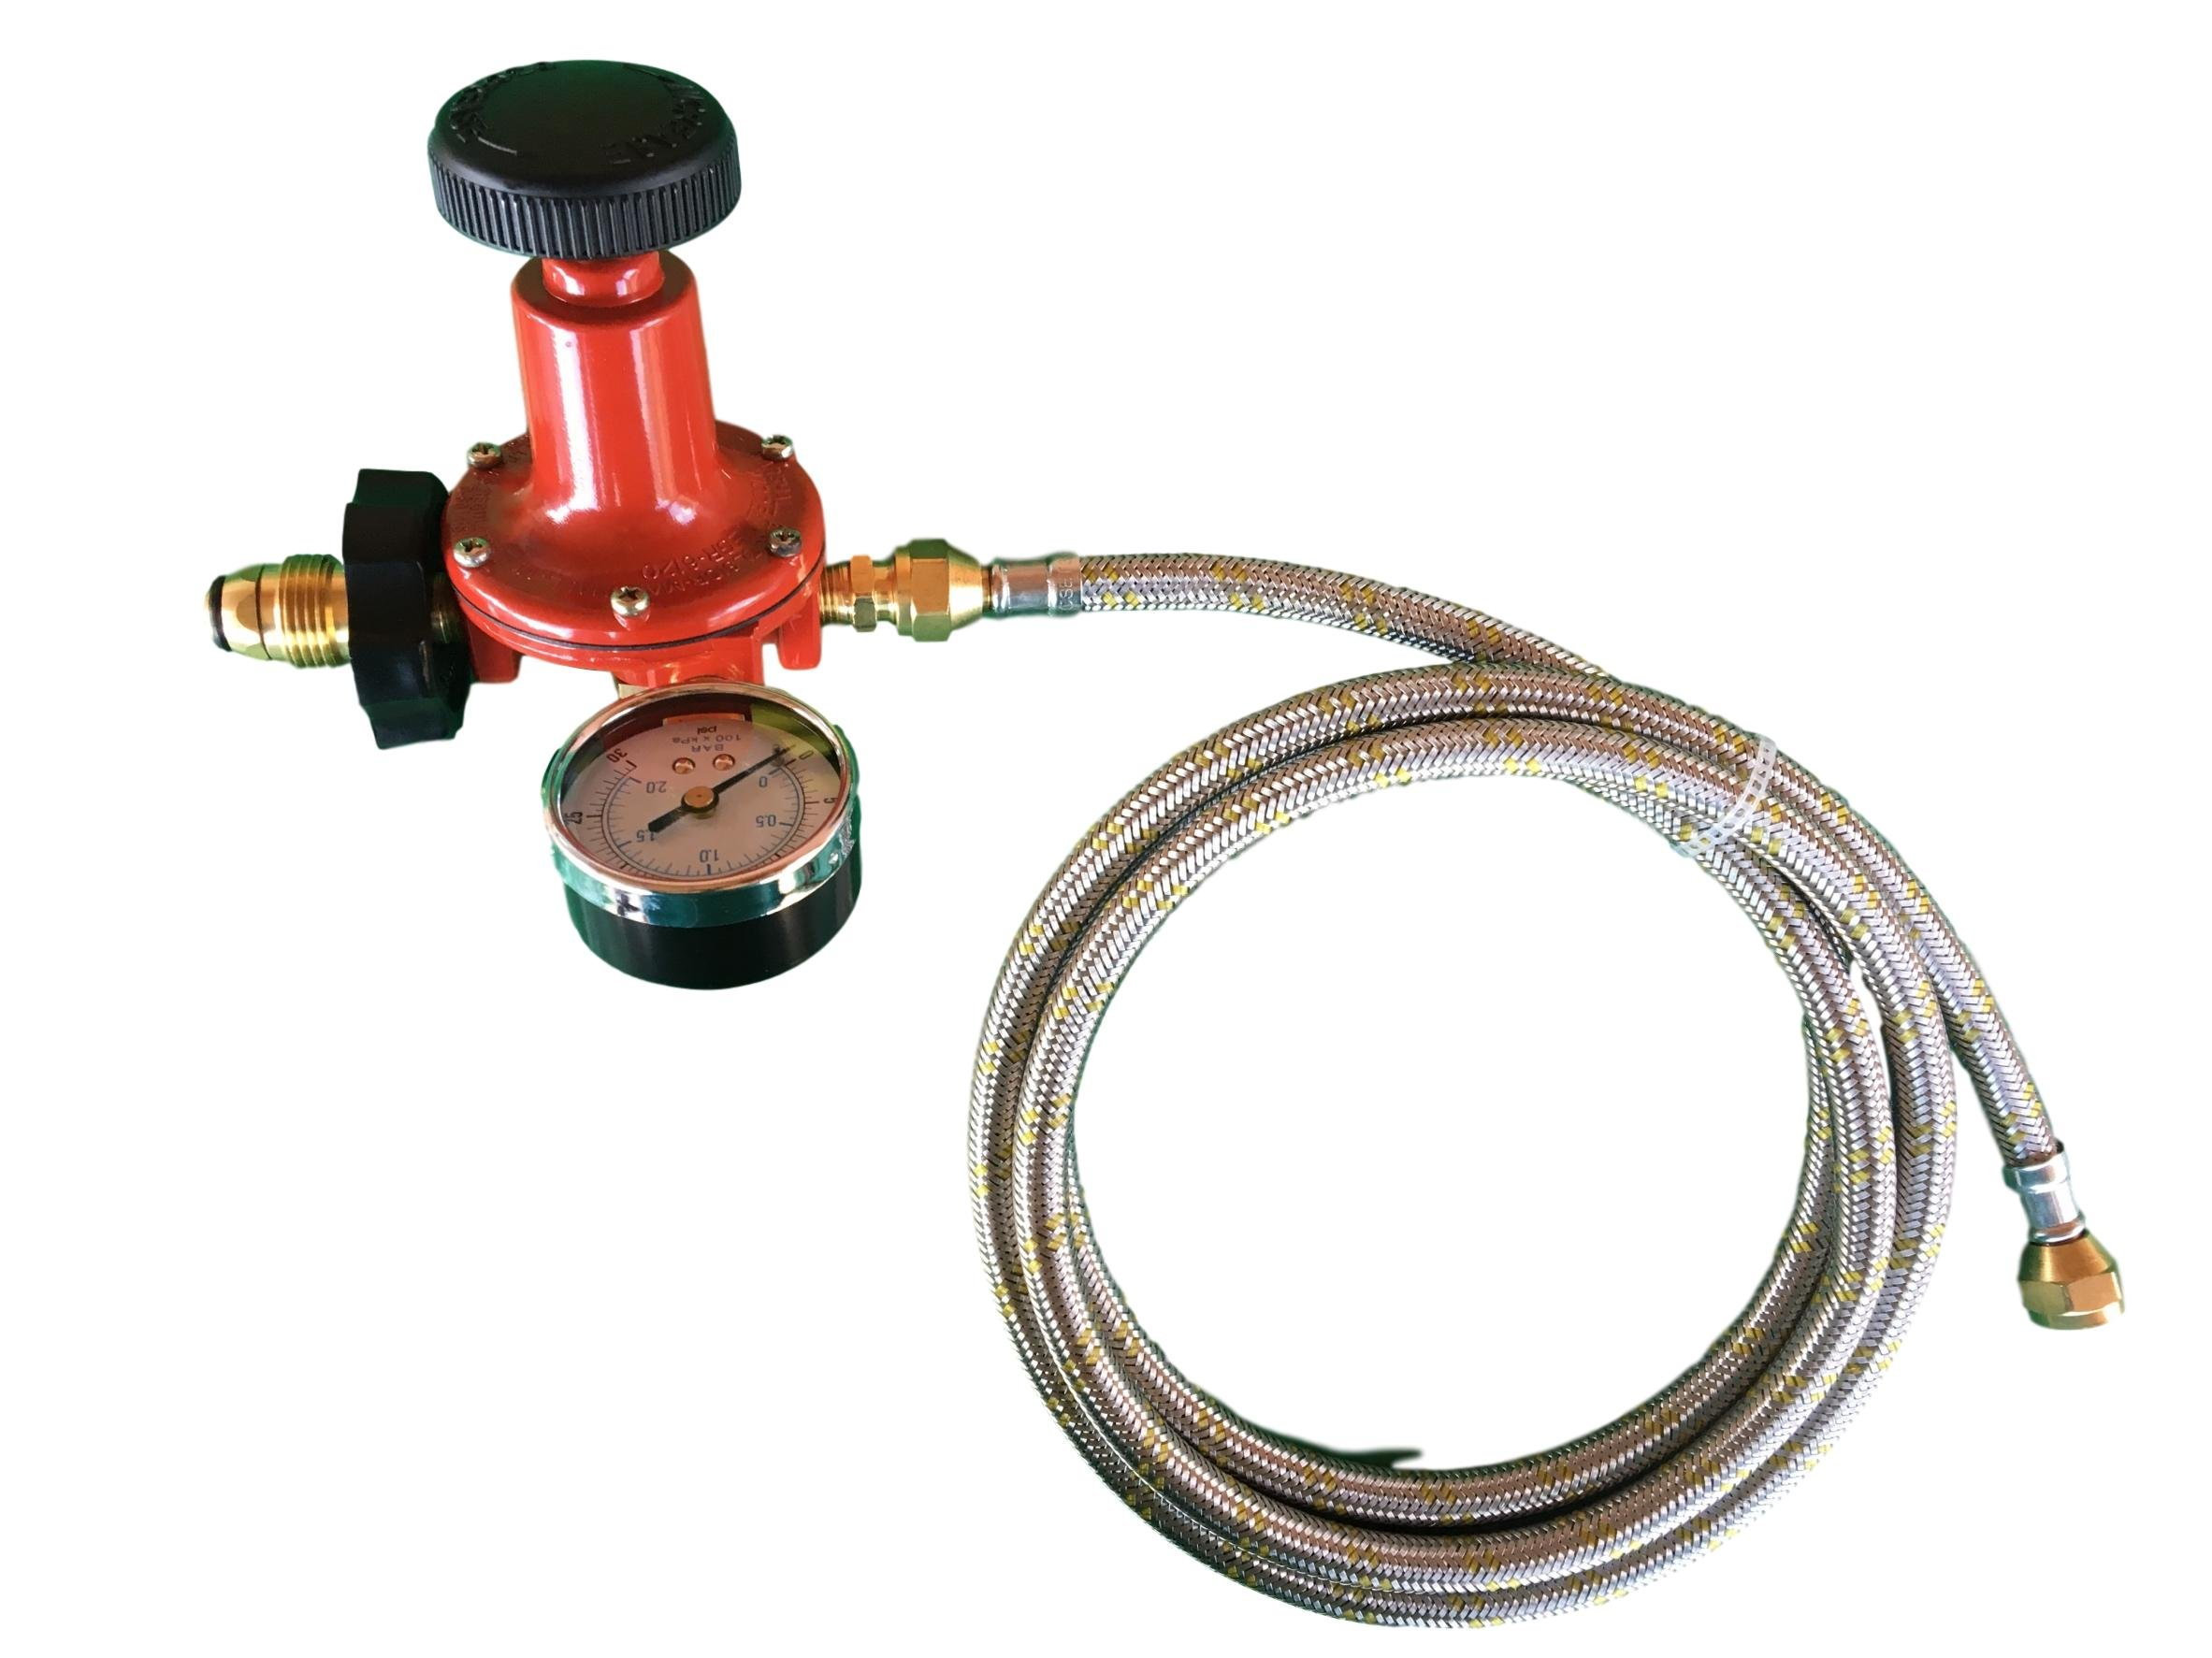 Propane LP Gas Adjustable 0-30psi High Pressure Regulator Soft POL Connector, Gauge and 5ft Stainless Steel Braided Hose